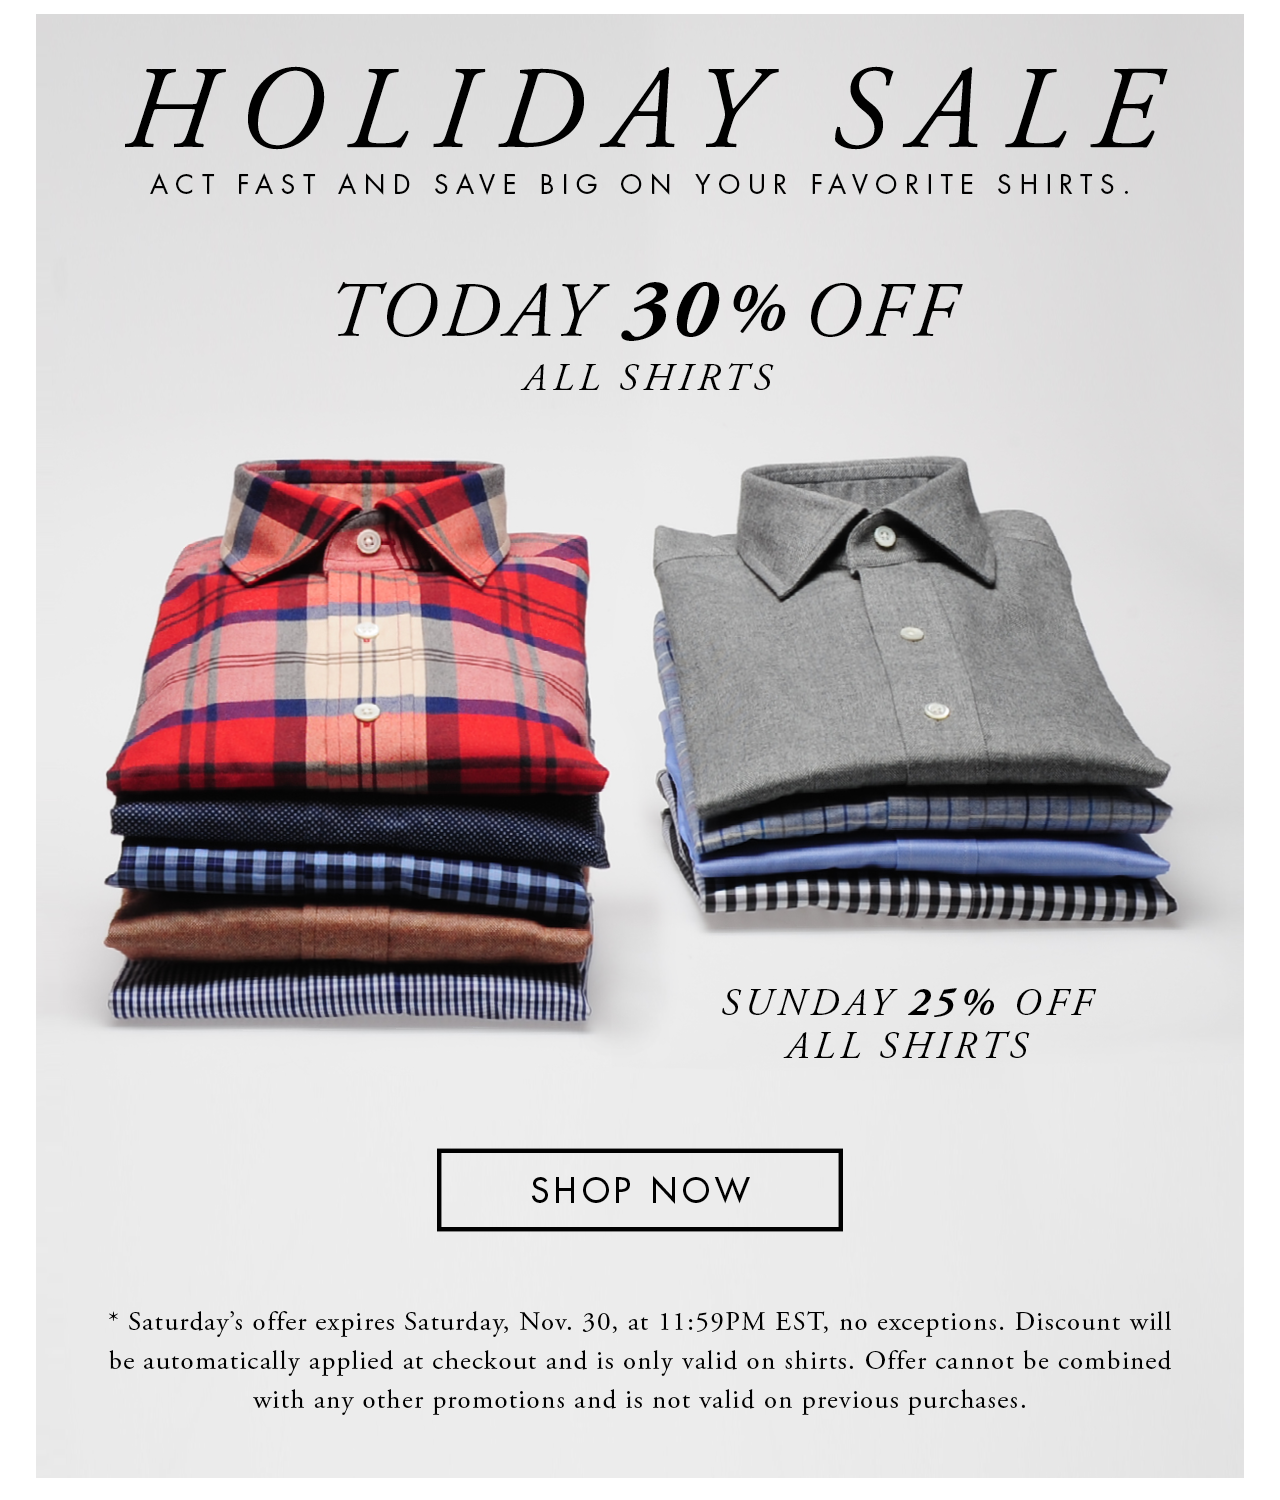 Holiday Sale, Saturday - 30% Off All Shirts